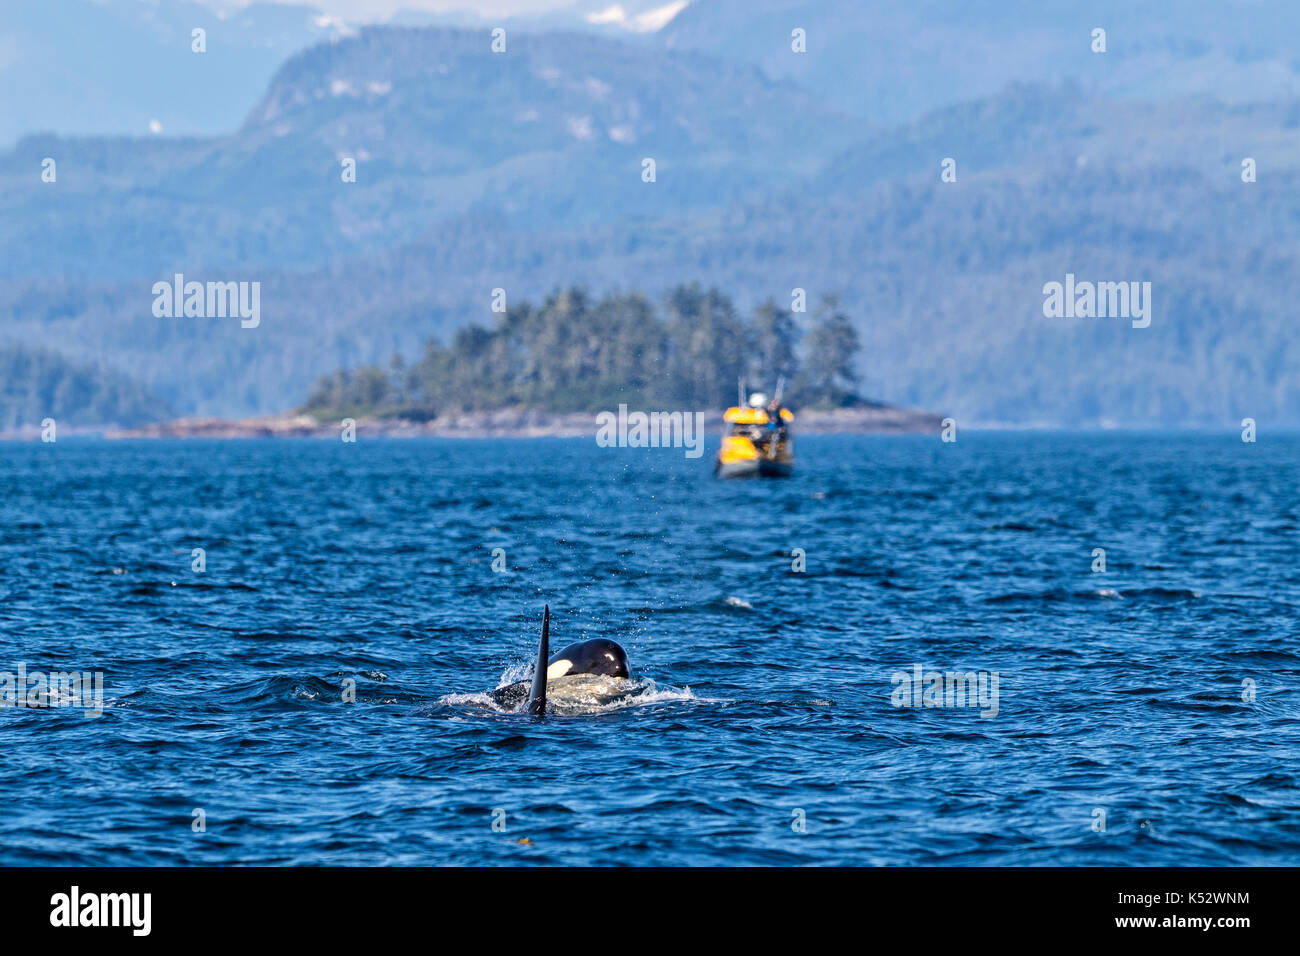 Two killer whales surfacing in front of a small ecotourism boat in Queen Charlotte Strait off Vancouver Island, British Columbia, Canada - Stock Image